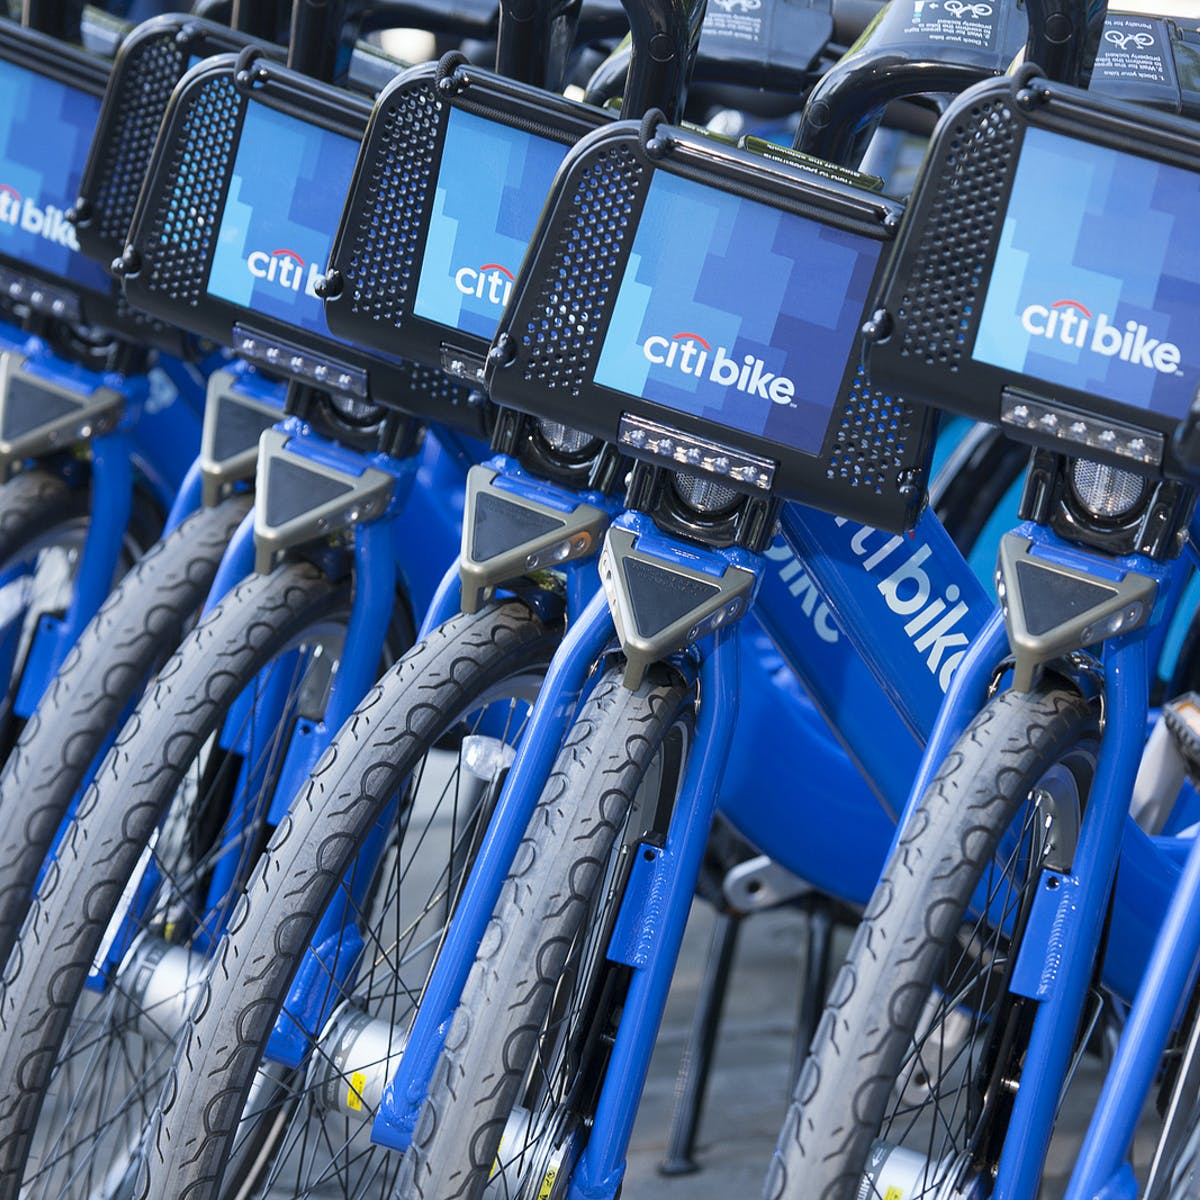 Bikeshare pricing could slow trend's rapid expansion